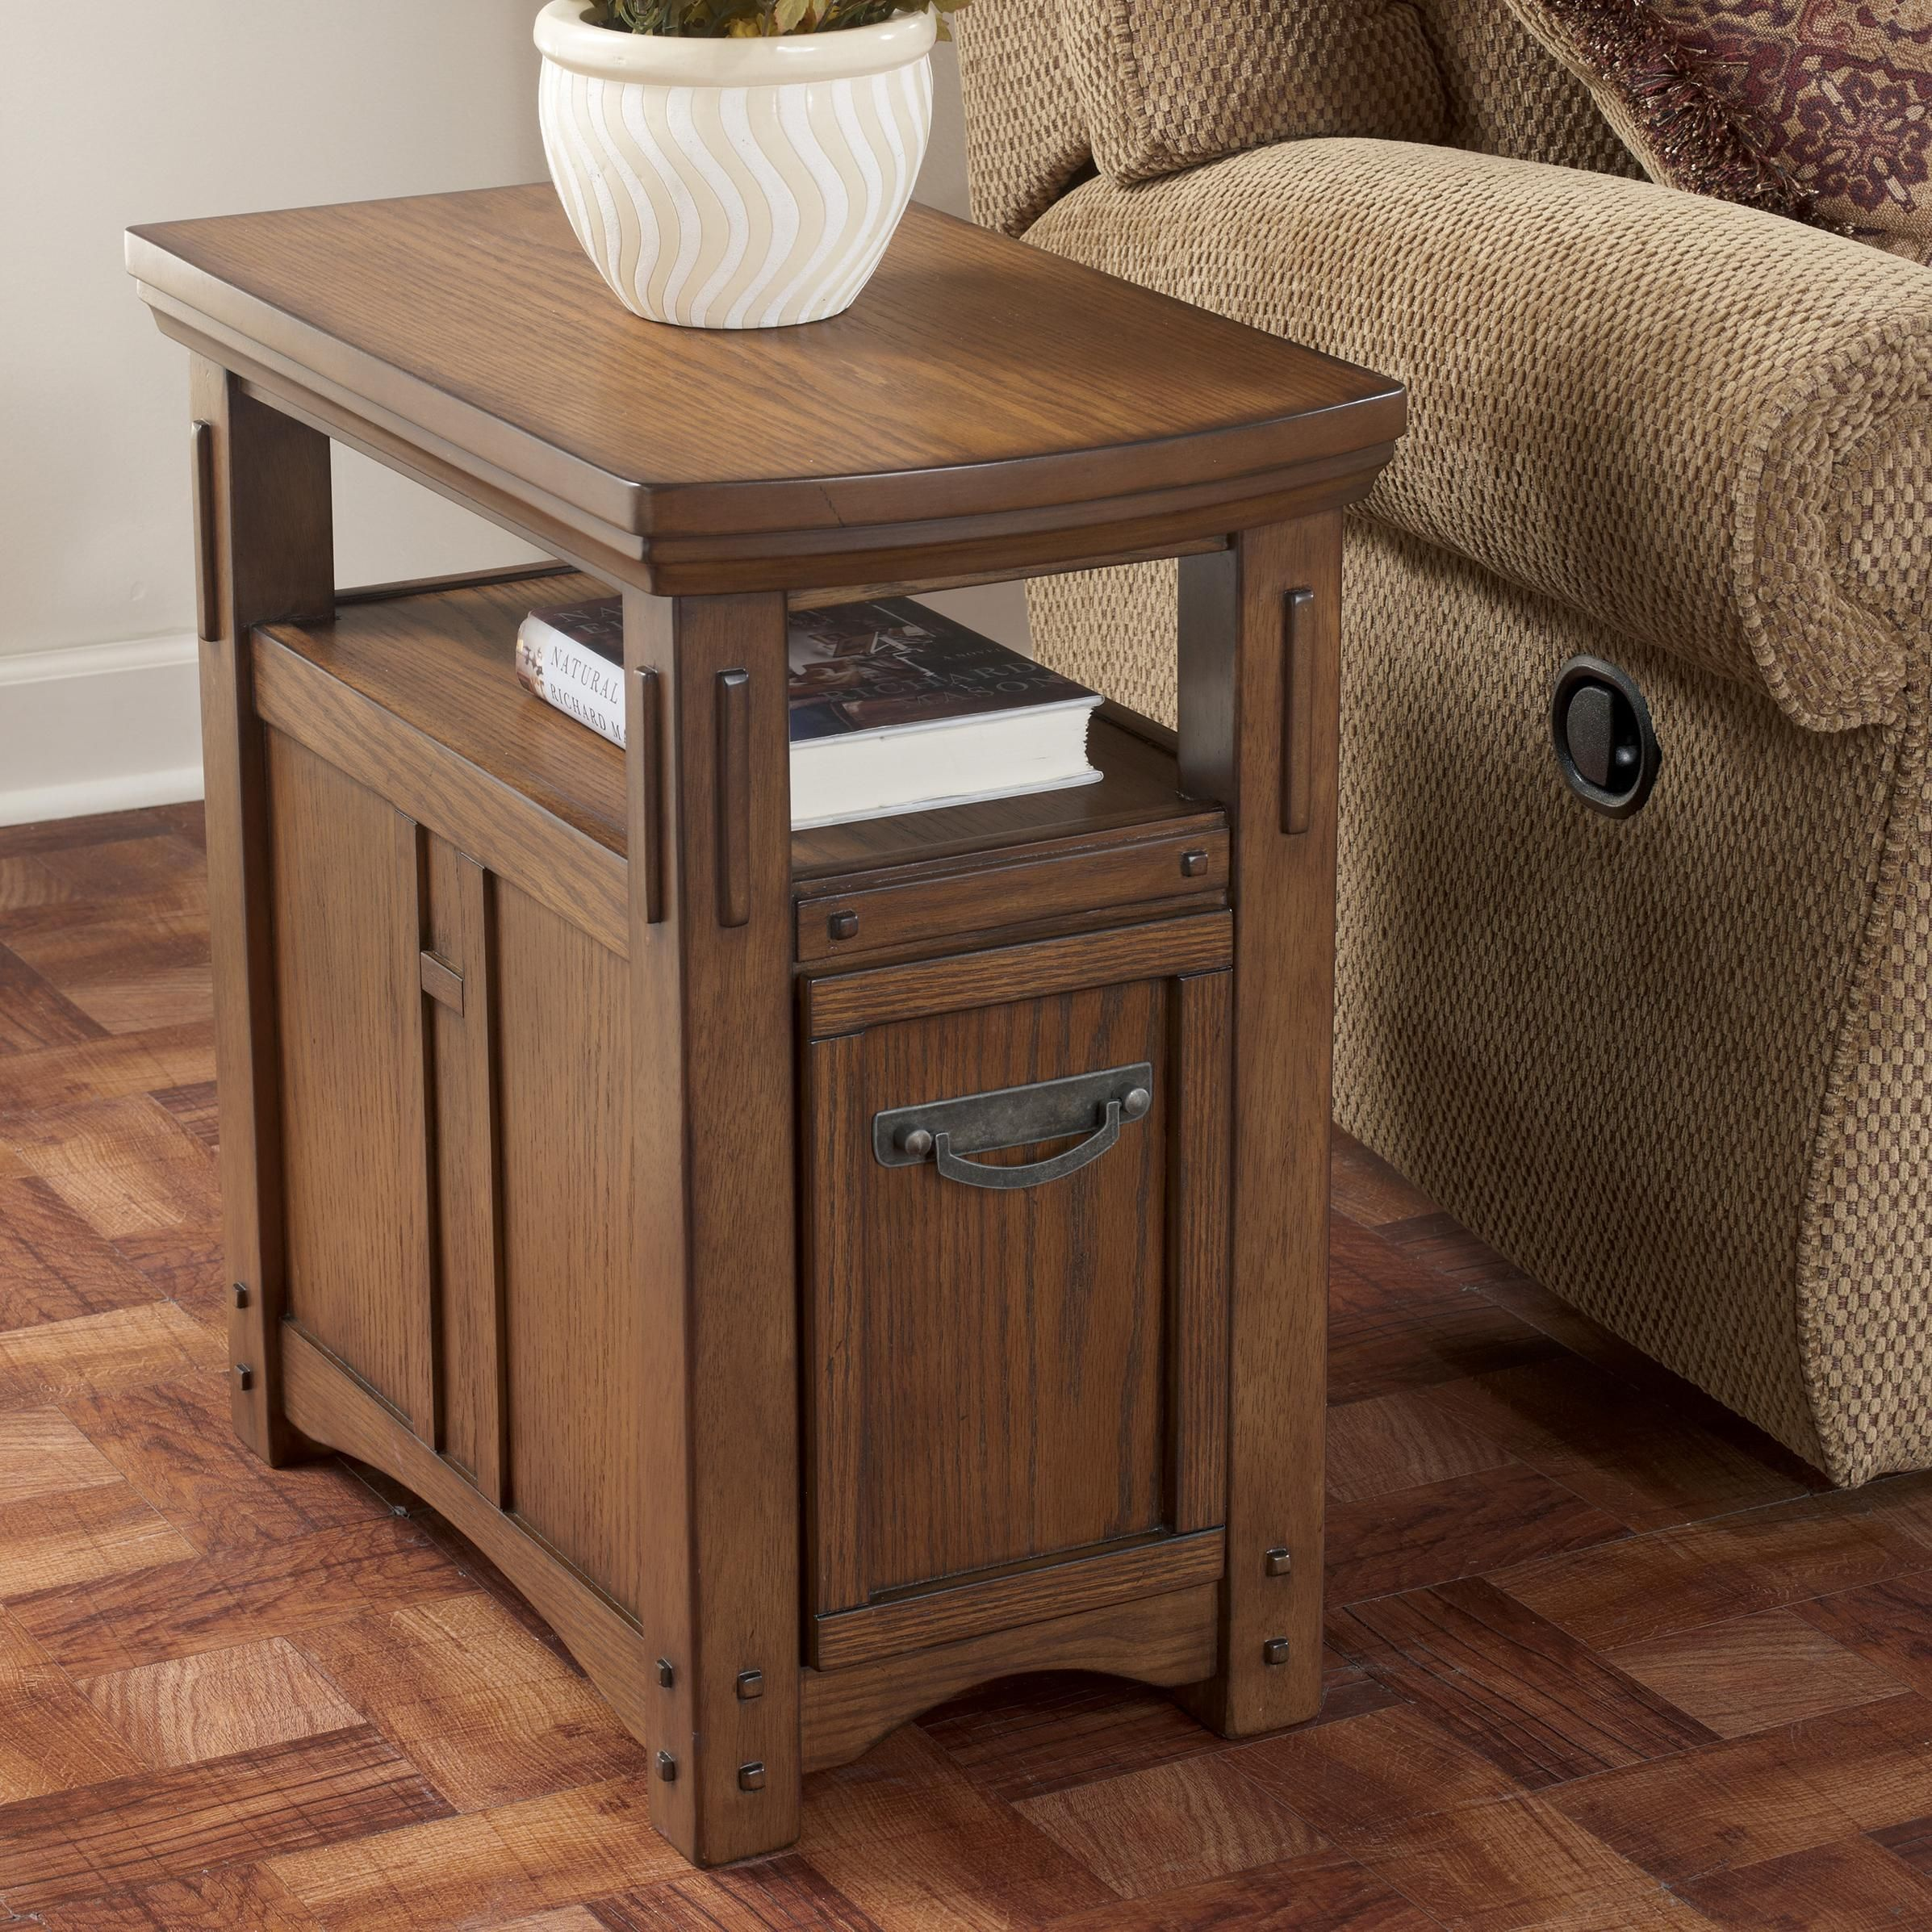 Discount Furniture Stores Winnipeg Kelvin Hall Chairside End Table By Signature Design By